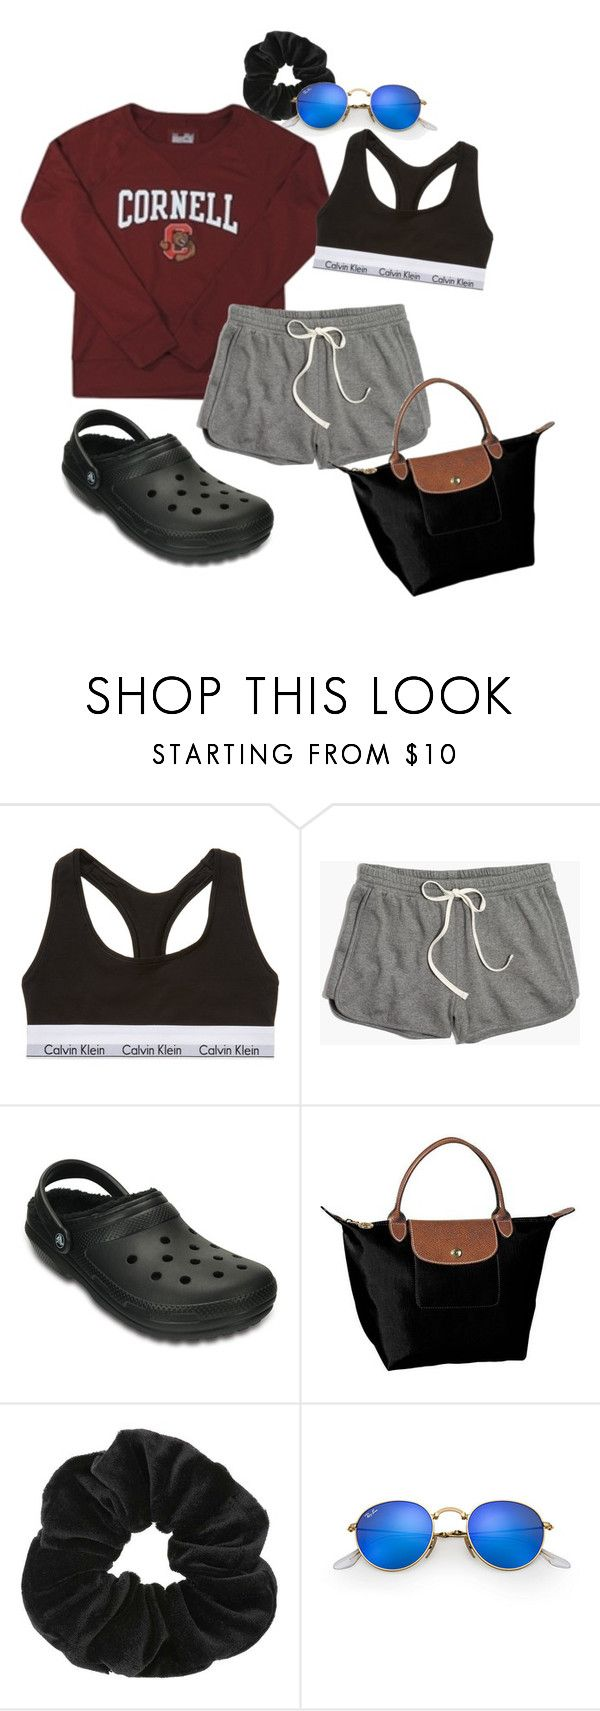 """cornell libe dayz"" by emmagc on Polyvore featuring Calvin Klein Underwear, Madewell, Crocs, Longchamp, Miss Selfridge and Ray-Ban"